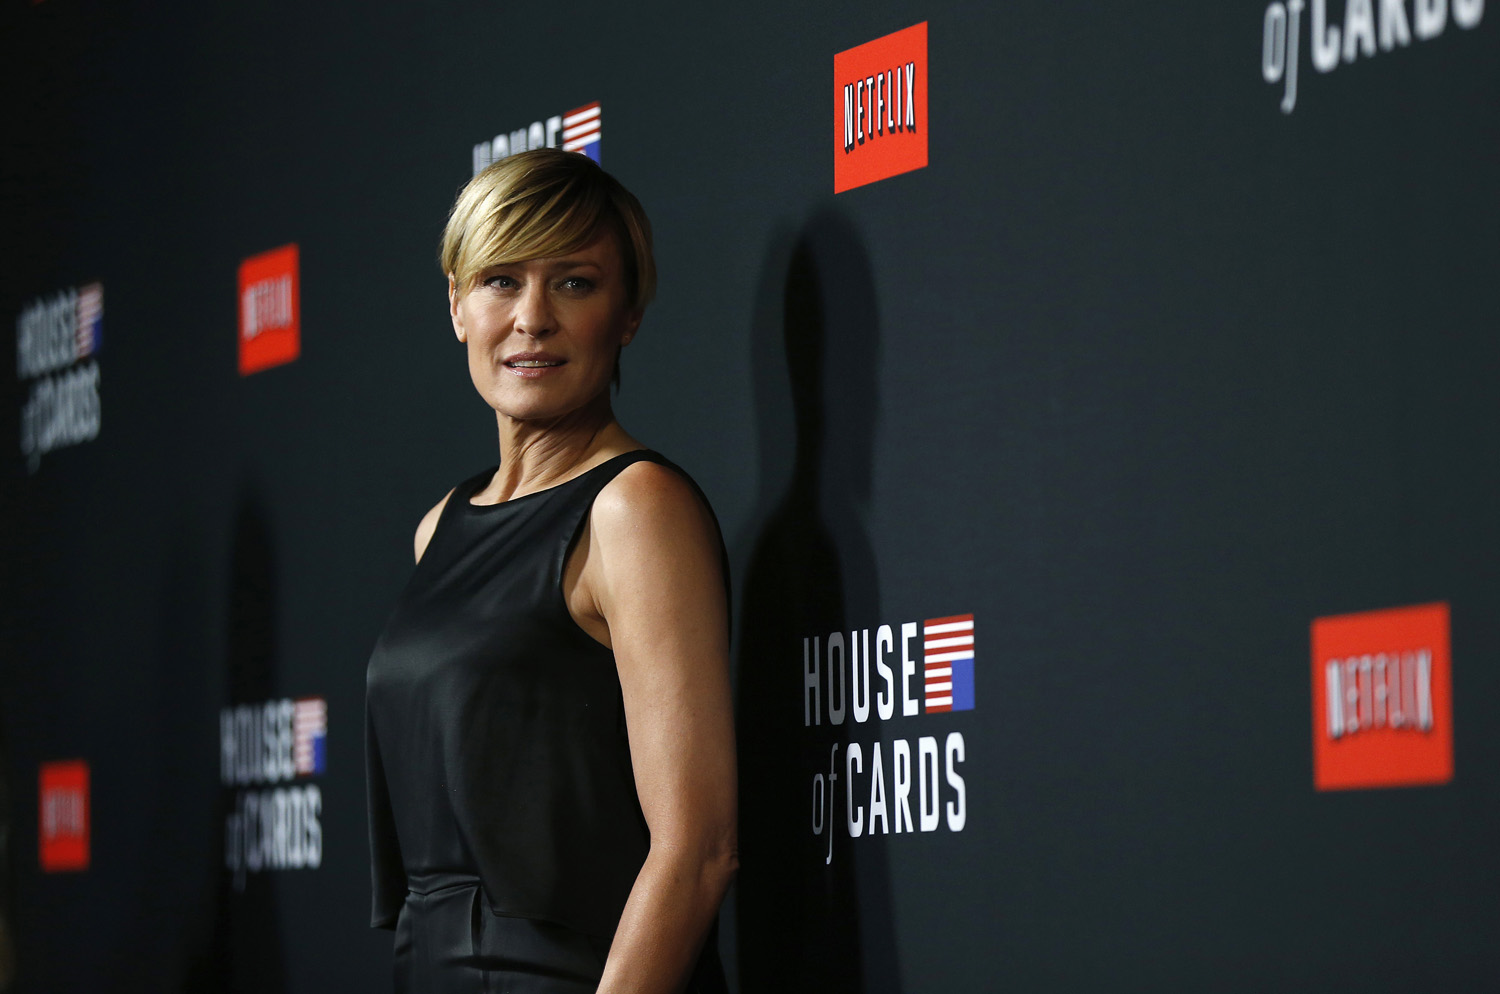 Cast member Robin Wright poses at the premiere for the second season of the television series  House of Cards  at the Directors Guild of America in Los Angeles, California February 13, 2014.